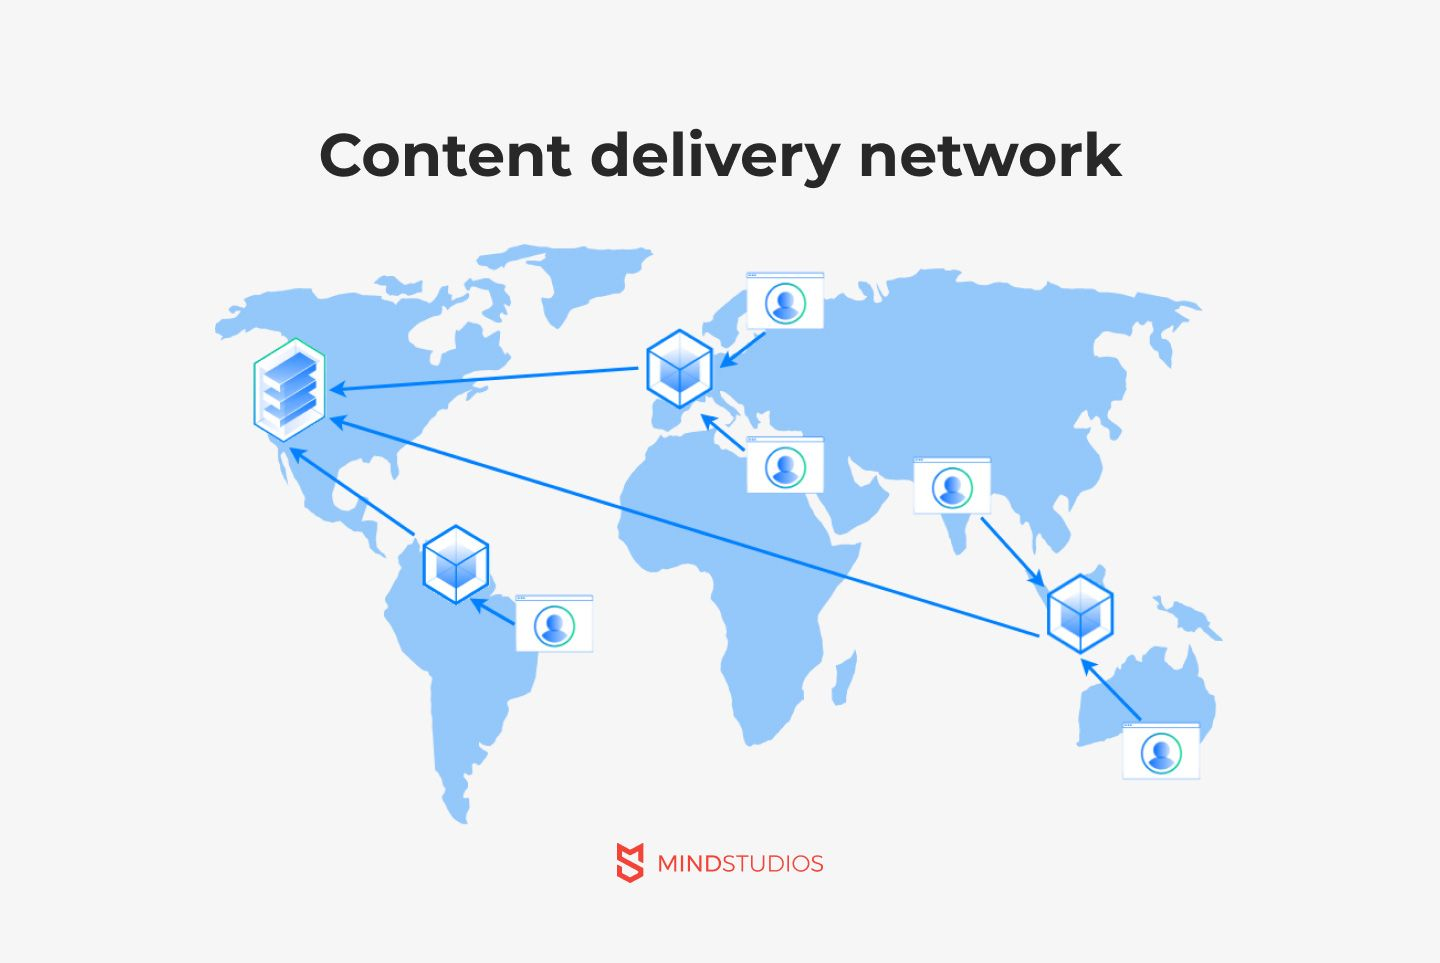 Content delivery network for video streaming platform